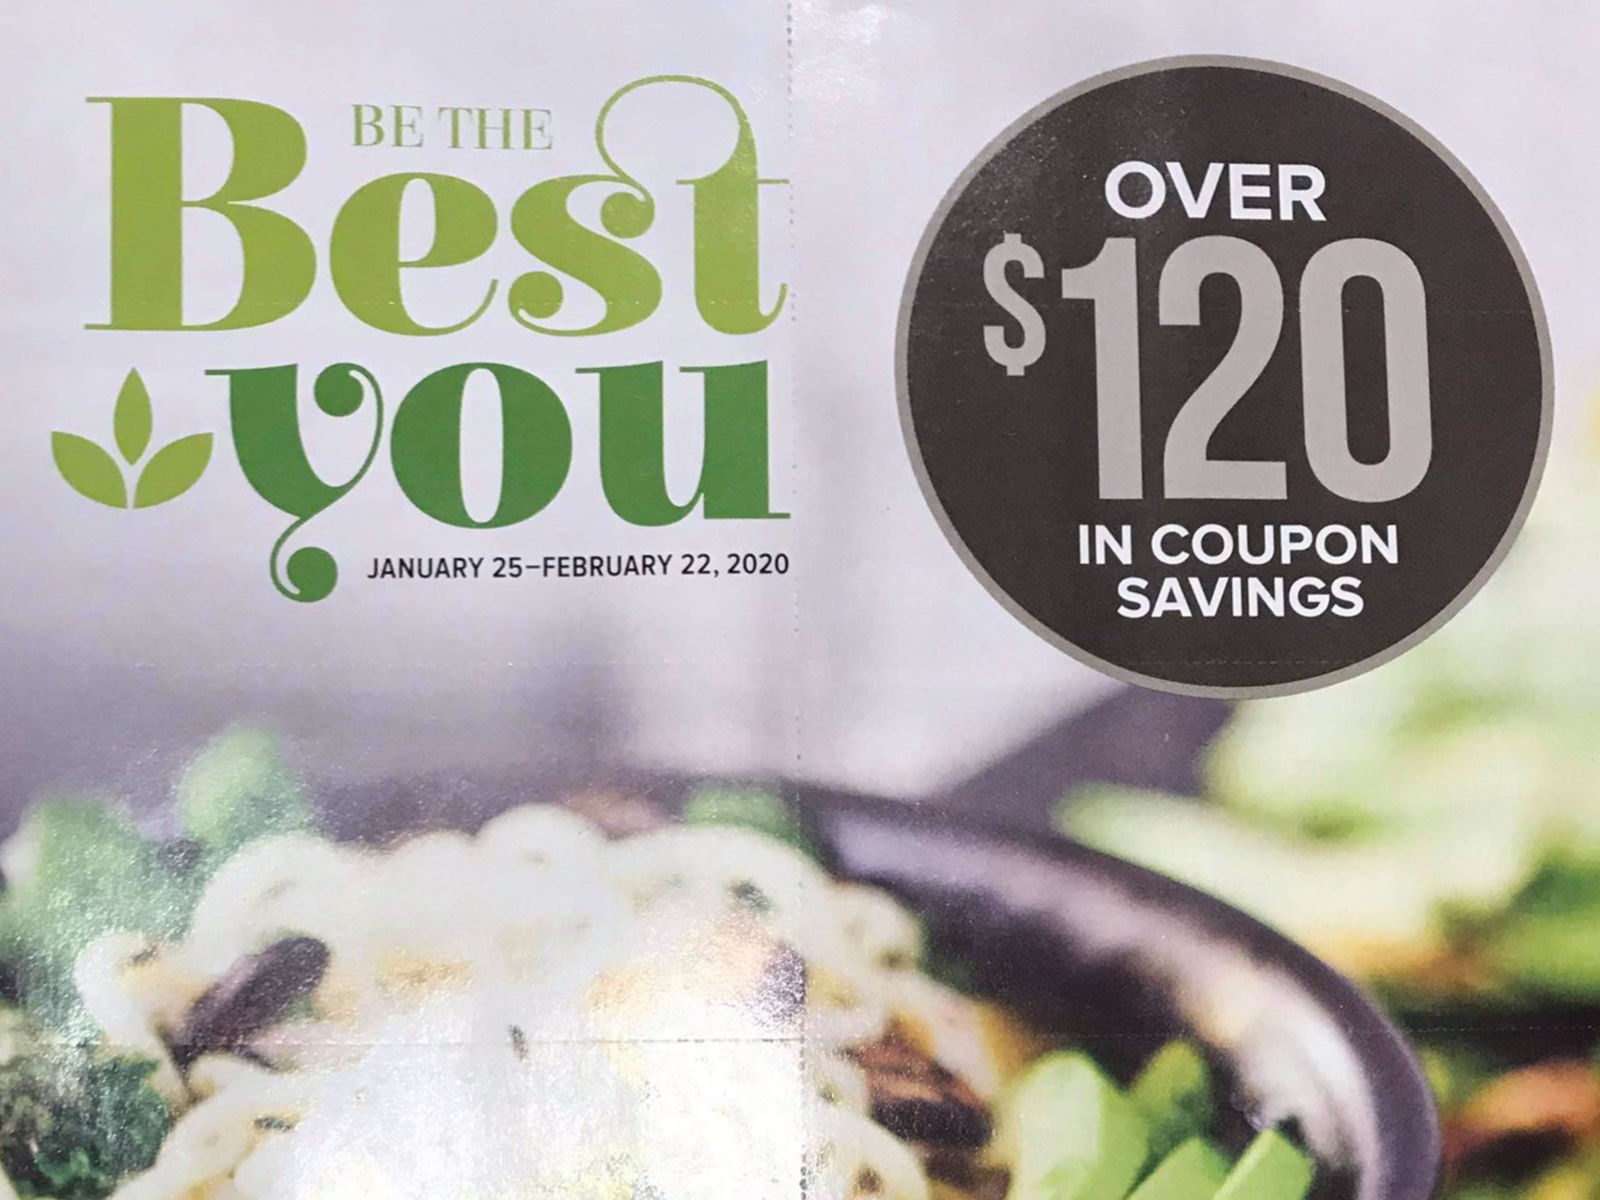 Publix Be The Best You Booklet For 2020 - Lots Of Great Coupons! on I Heart Publix